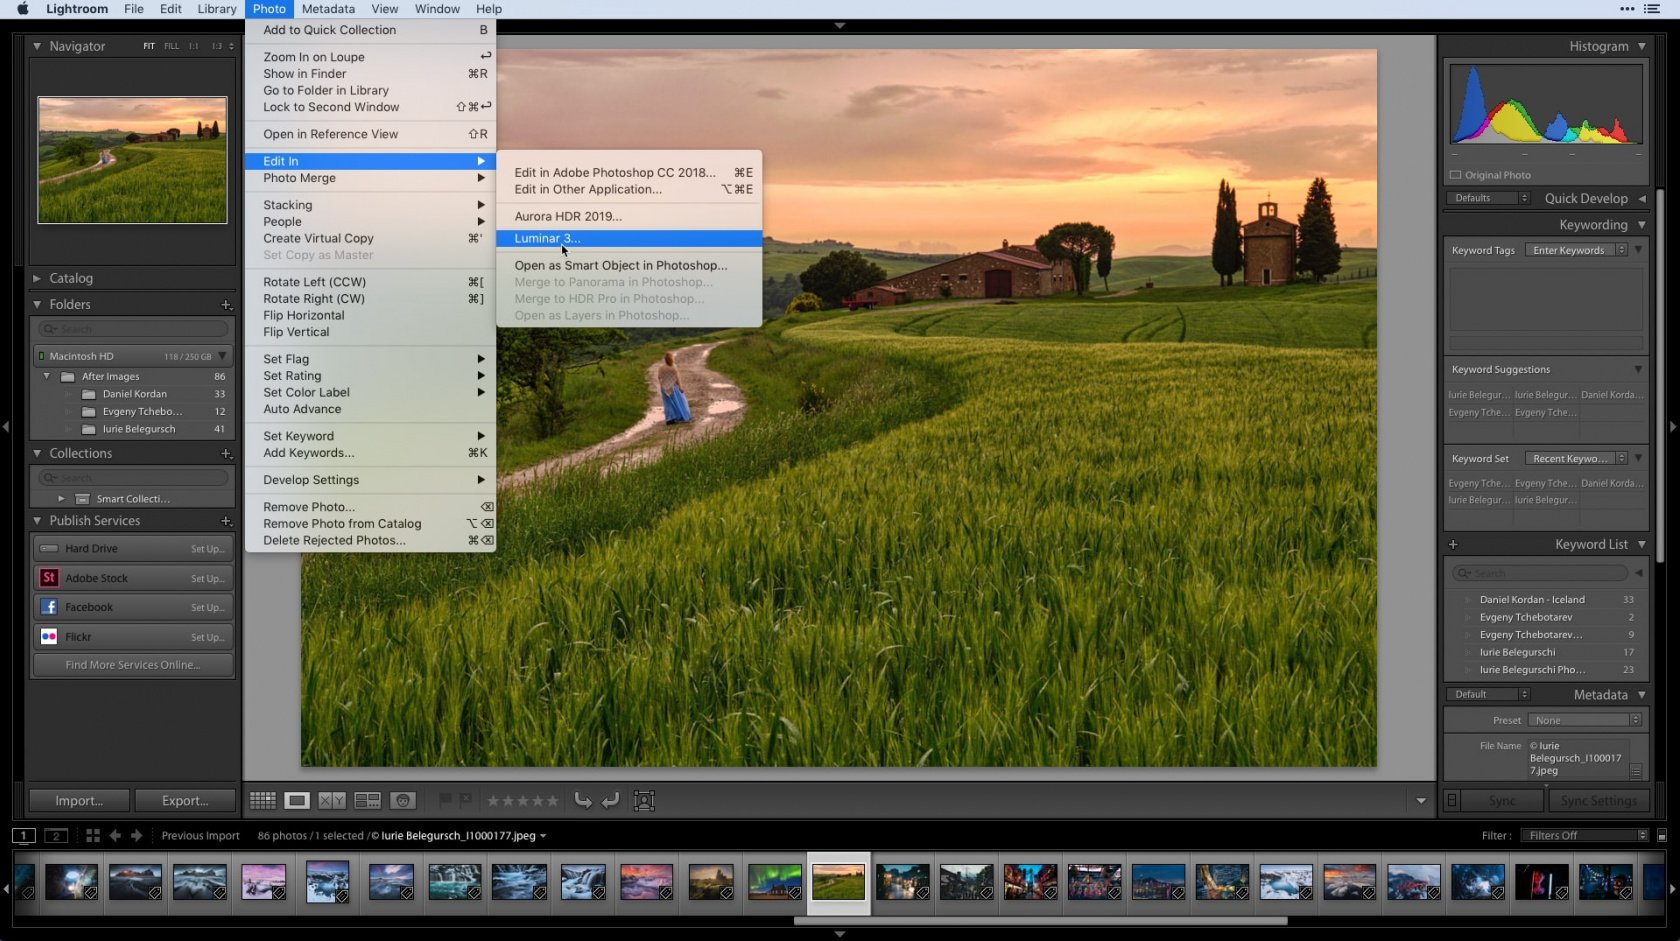 Seven Reasons Why Luminar 3 Is a Worthy Lightroom